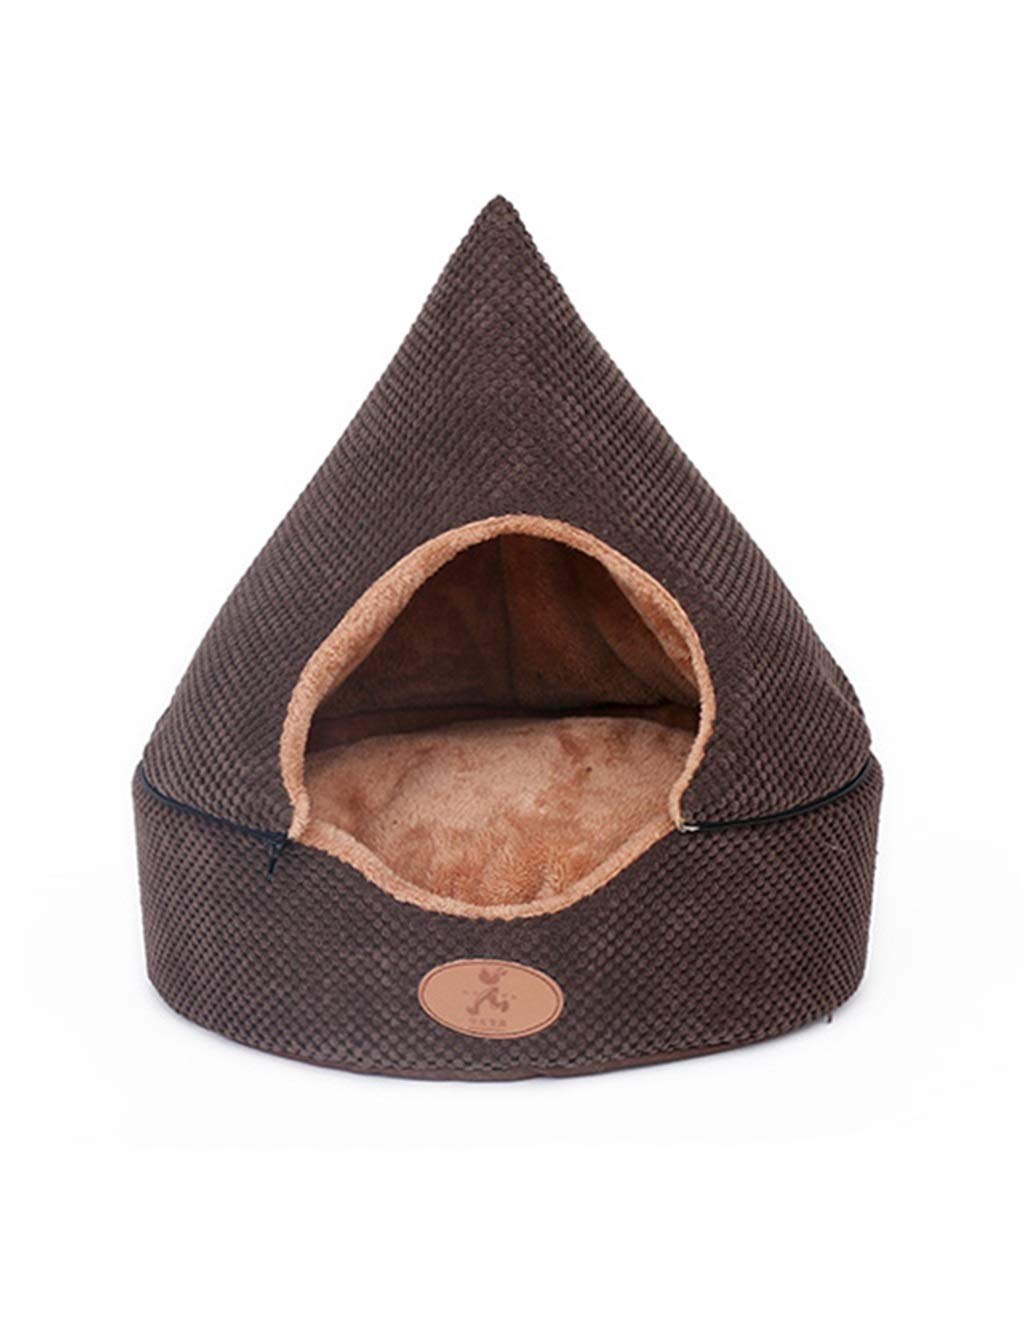 Pet Bed   Creative Cat House with Comfy Thicker Cushion, Detachable Cat Bed  Keep Warm, for Kittens, Kats & Puppys